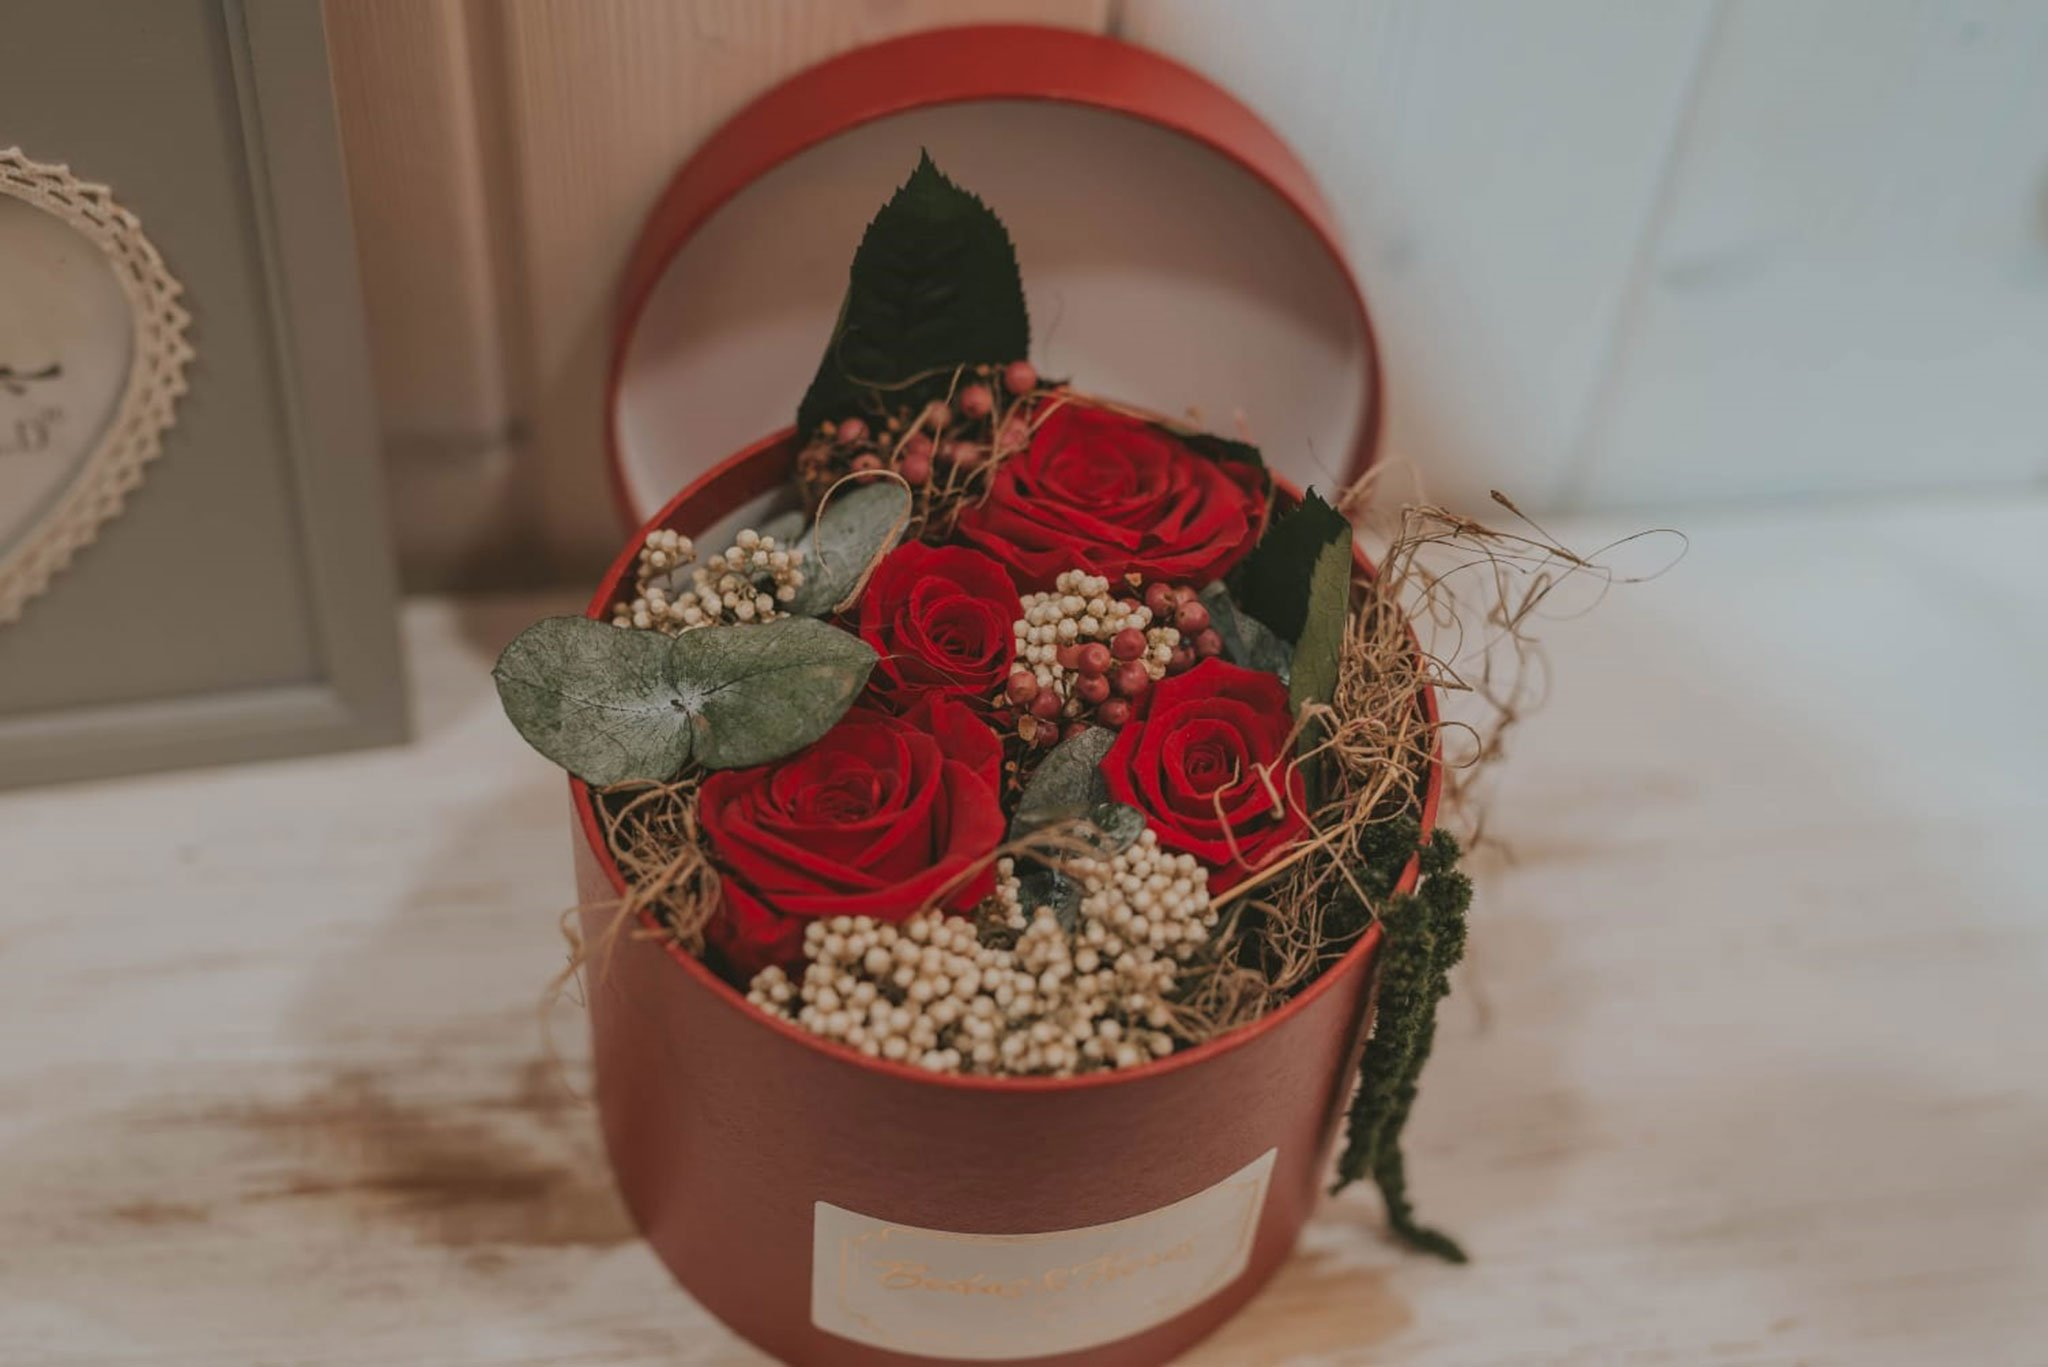 Hat box of preserved flowers for Valentine's Day - Weddings and Flowers